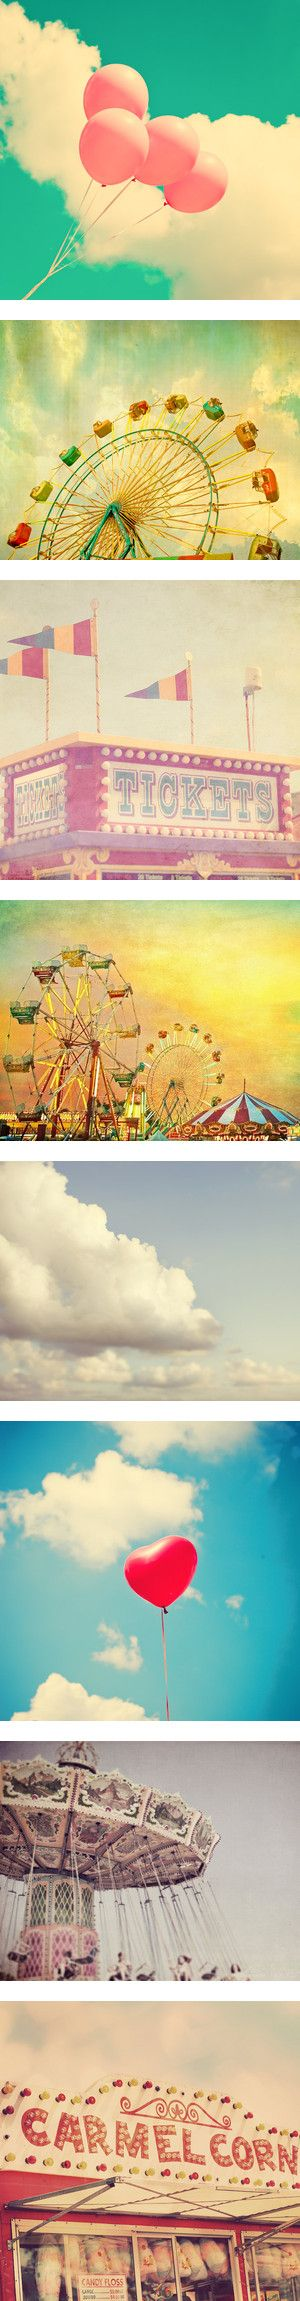 vintage carnival pictures. Having fun at the State Fairs and carnivals. B.